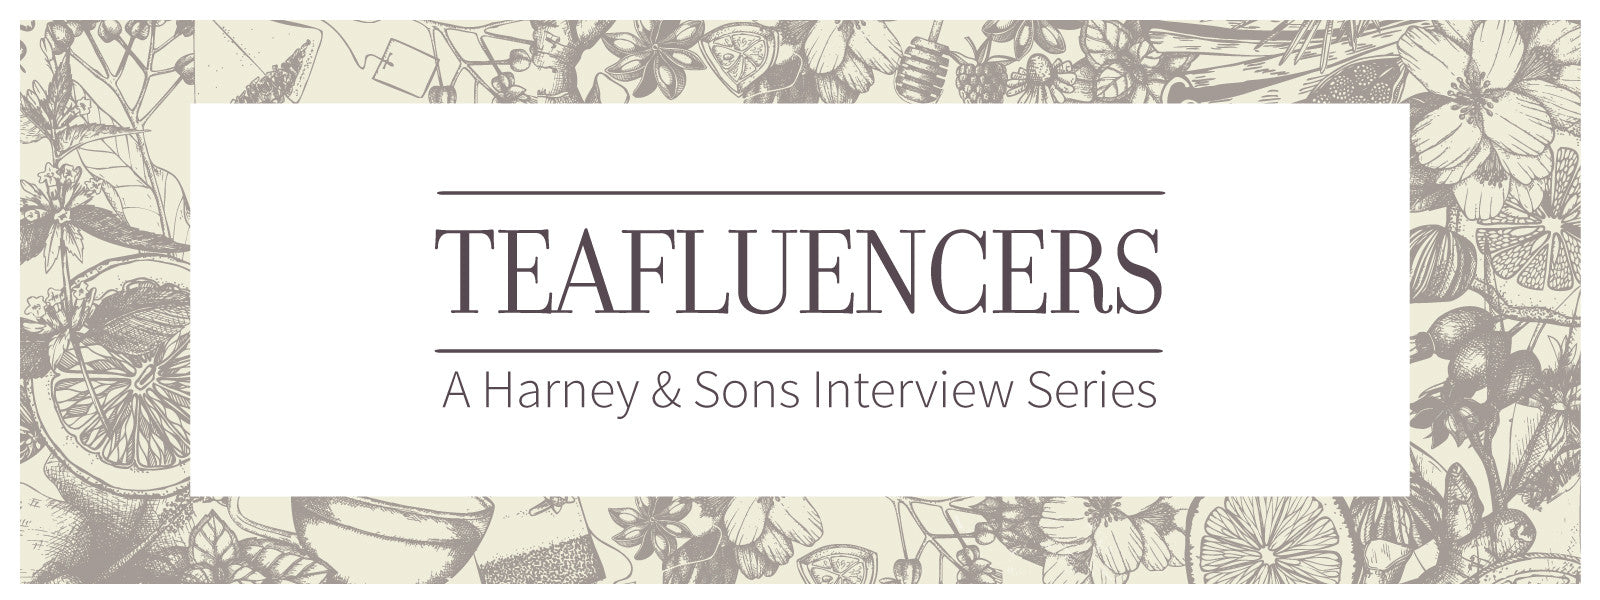 Harney and Sons Teafluencer Joel Banta